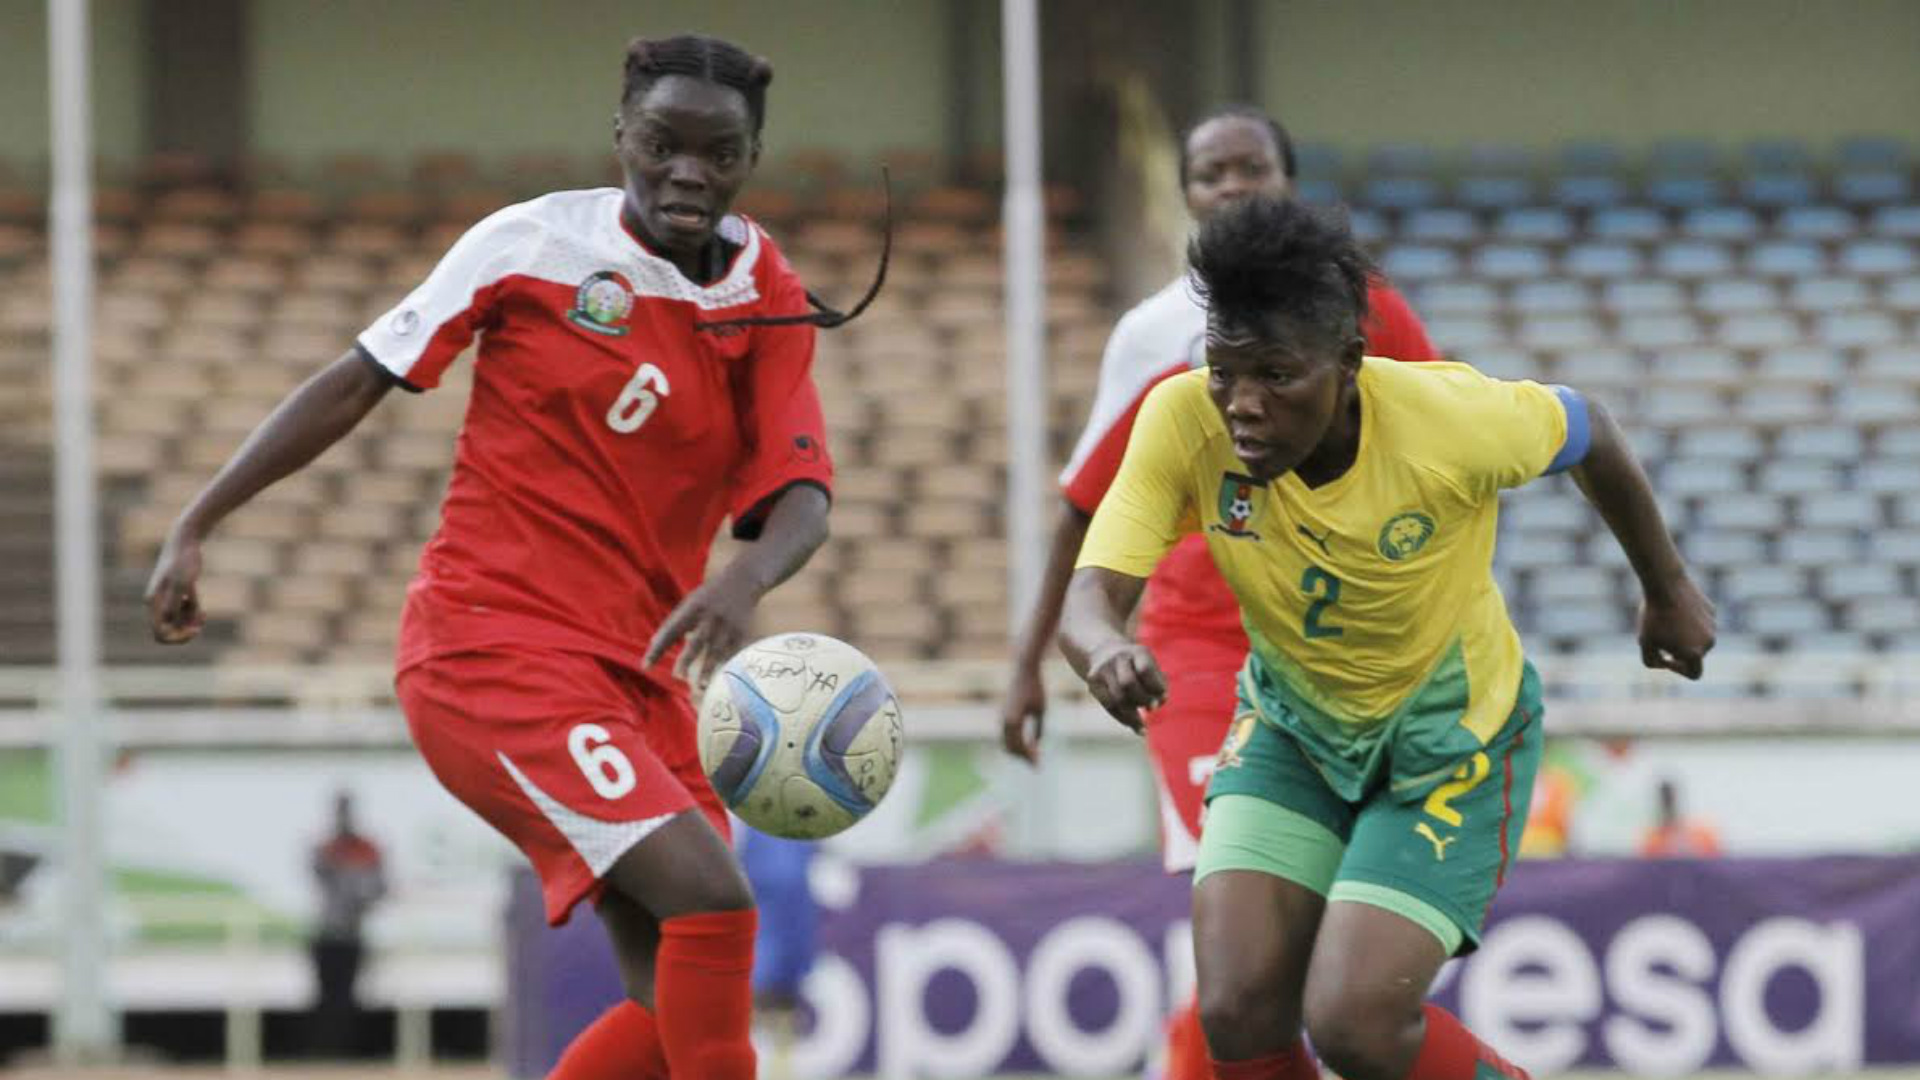 Caroylne Anyango of Harambee Starlets goes for the ball under challenge from a Cameroon opponent